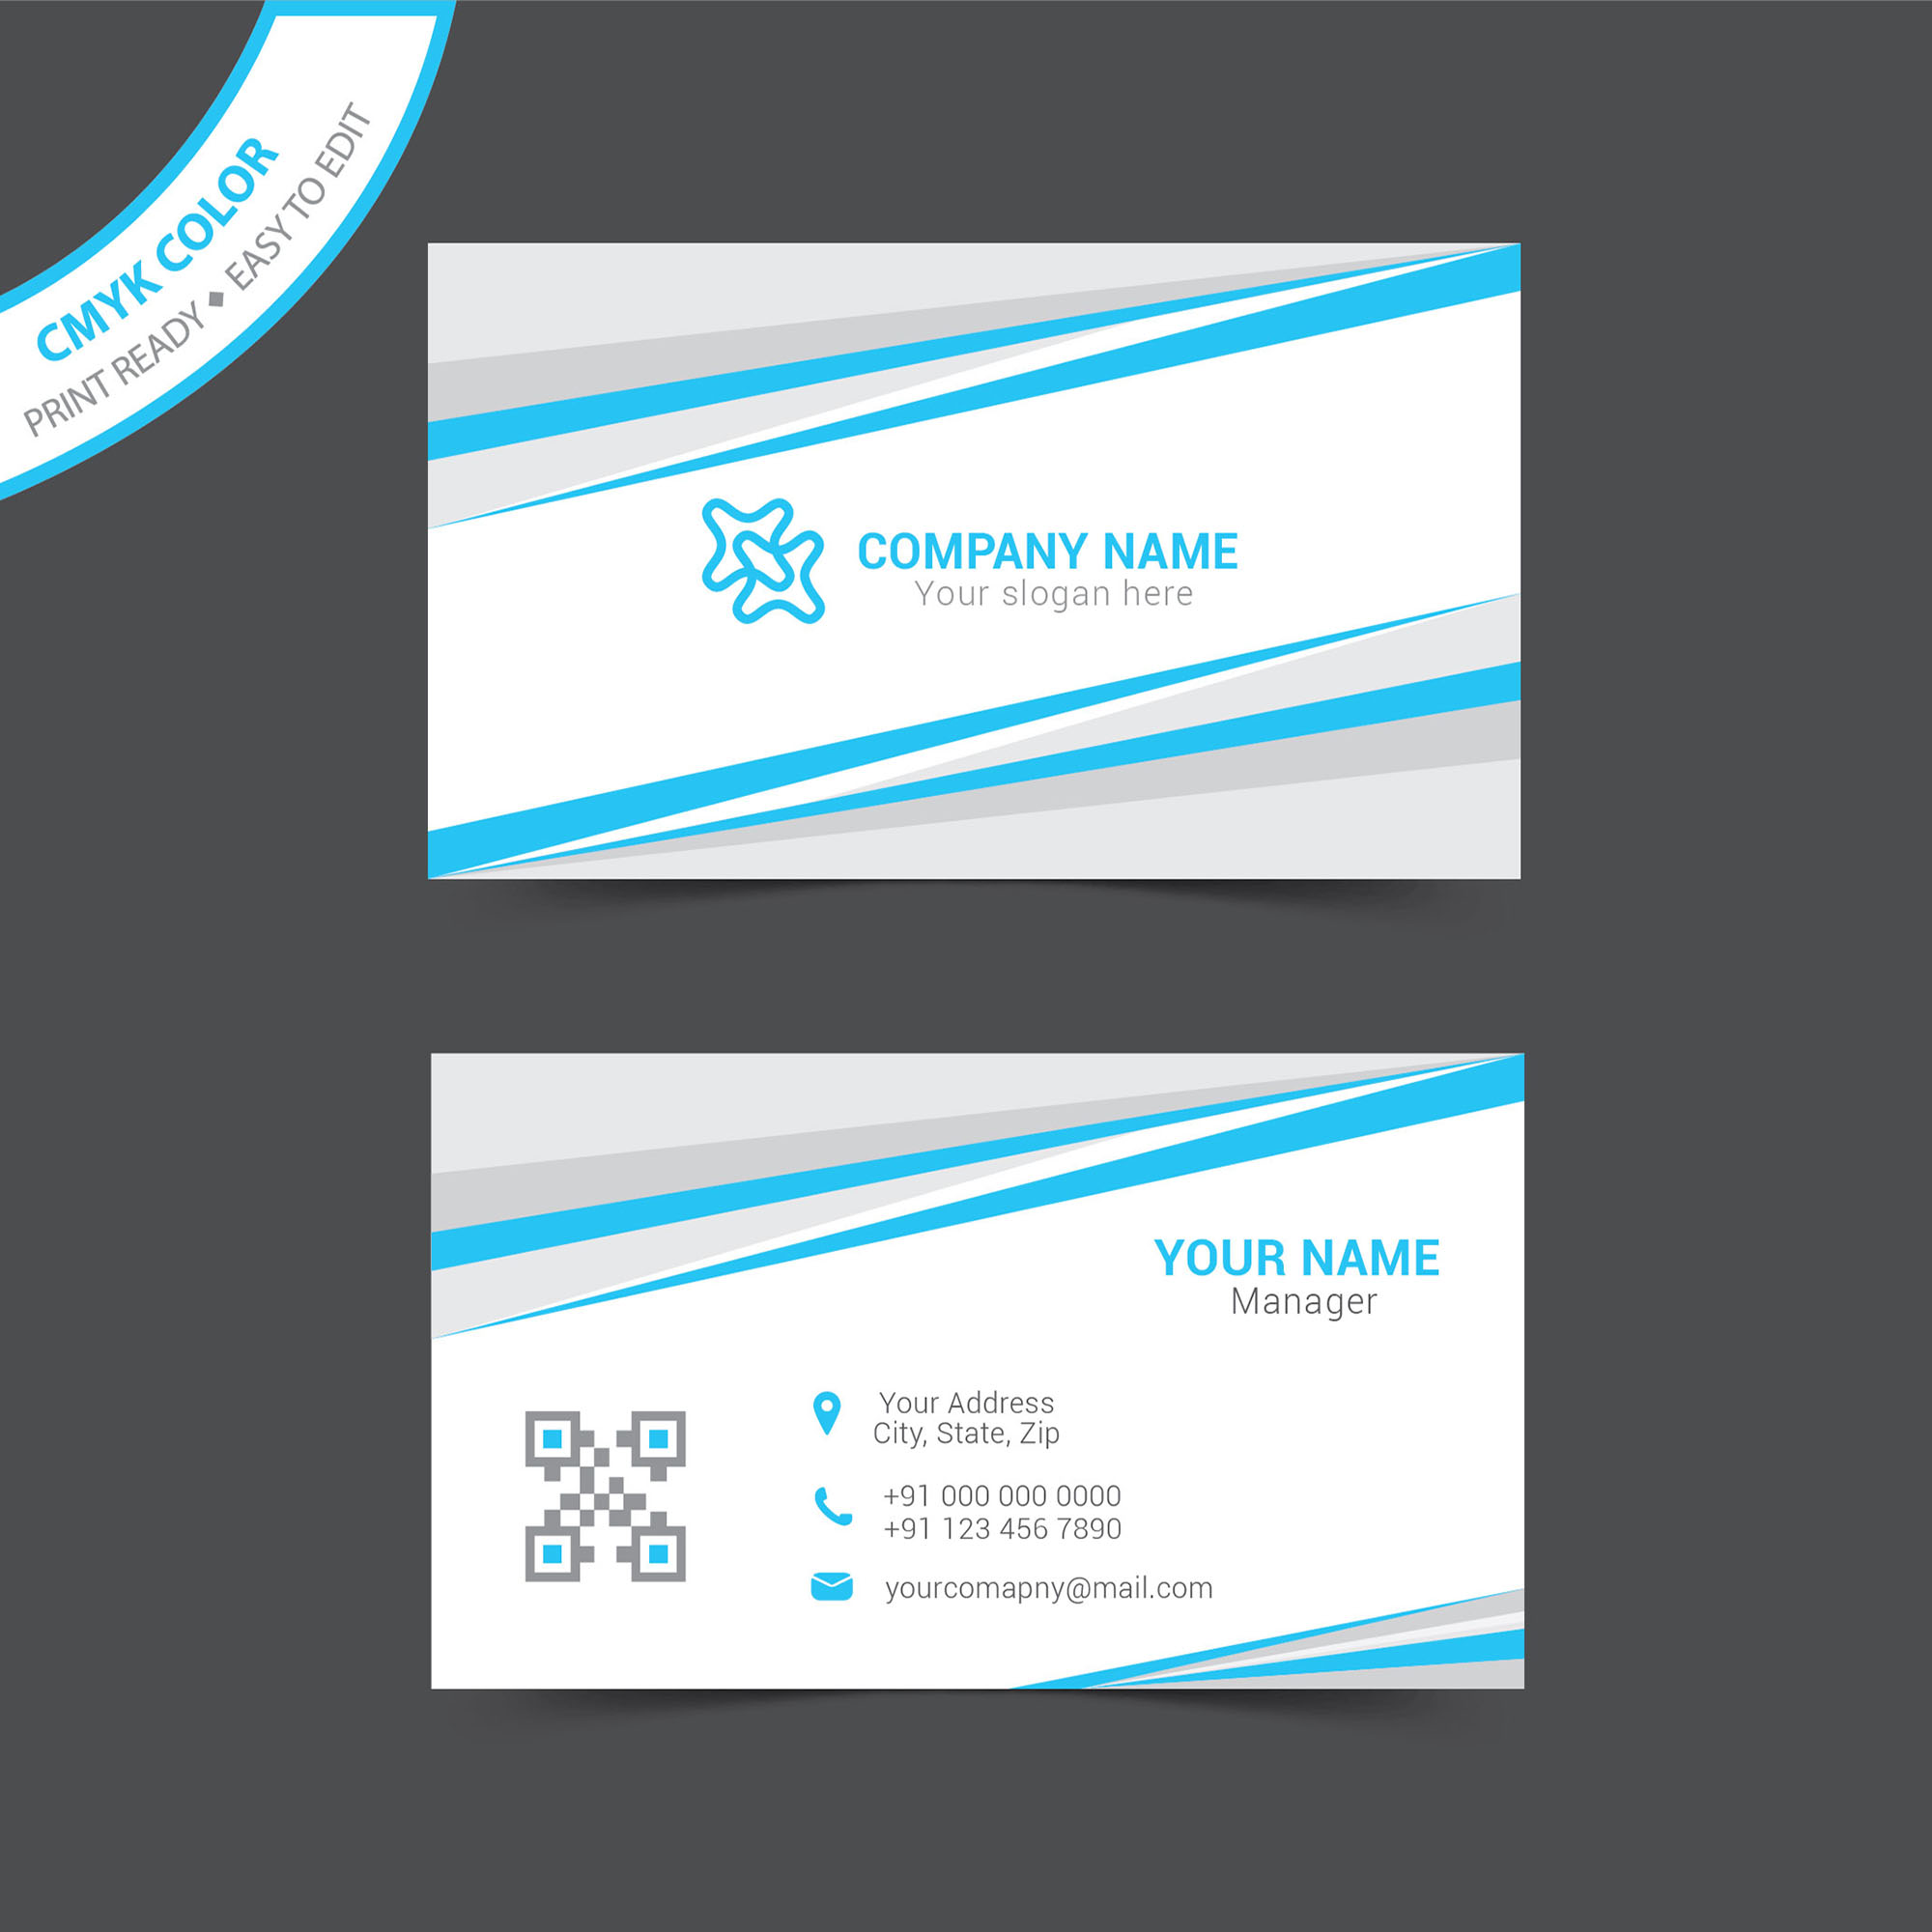 Simple business card template free download wisxi business card business cards business card design business card template design templates fbccfo Images